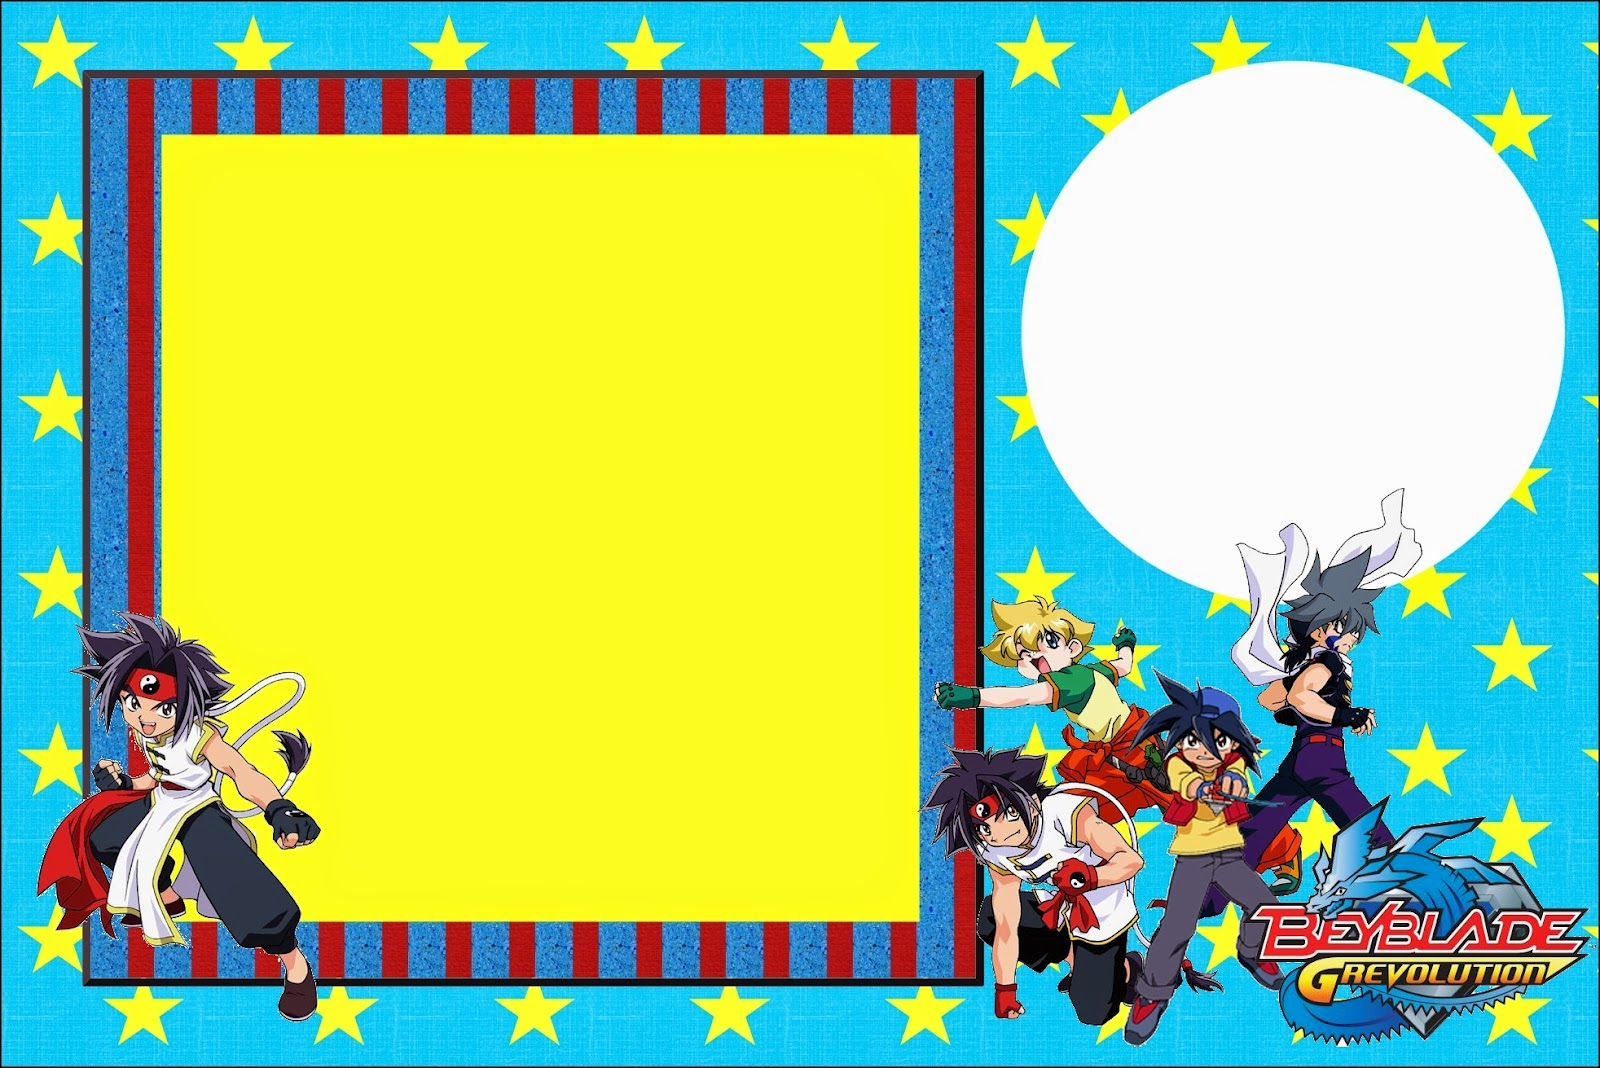 Beyblade: Free Printable Invitations. - Oh My Fiesta! for ...